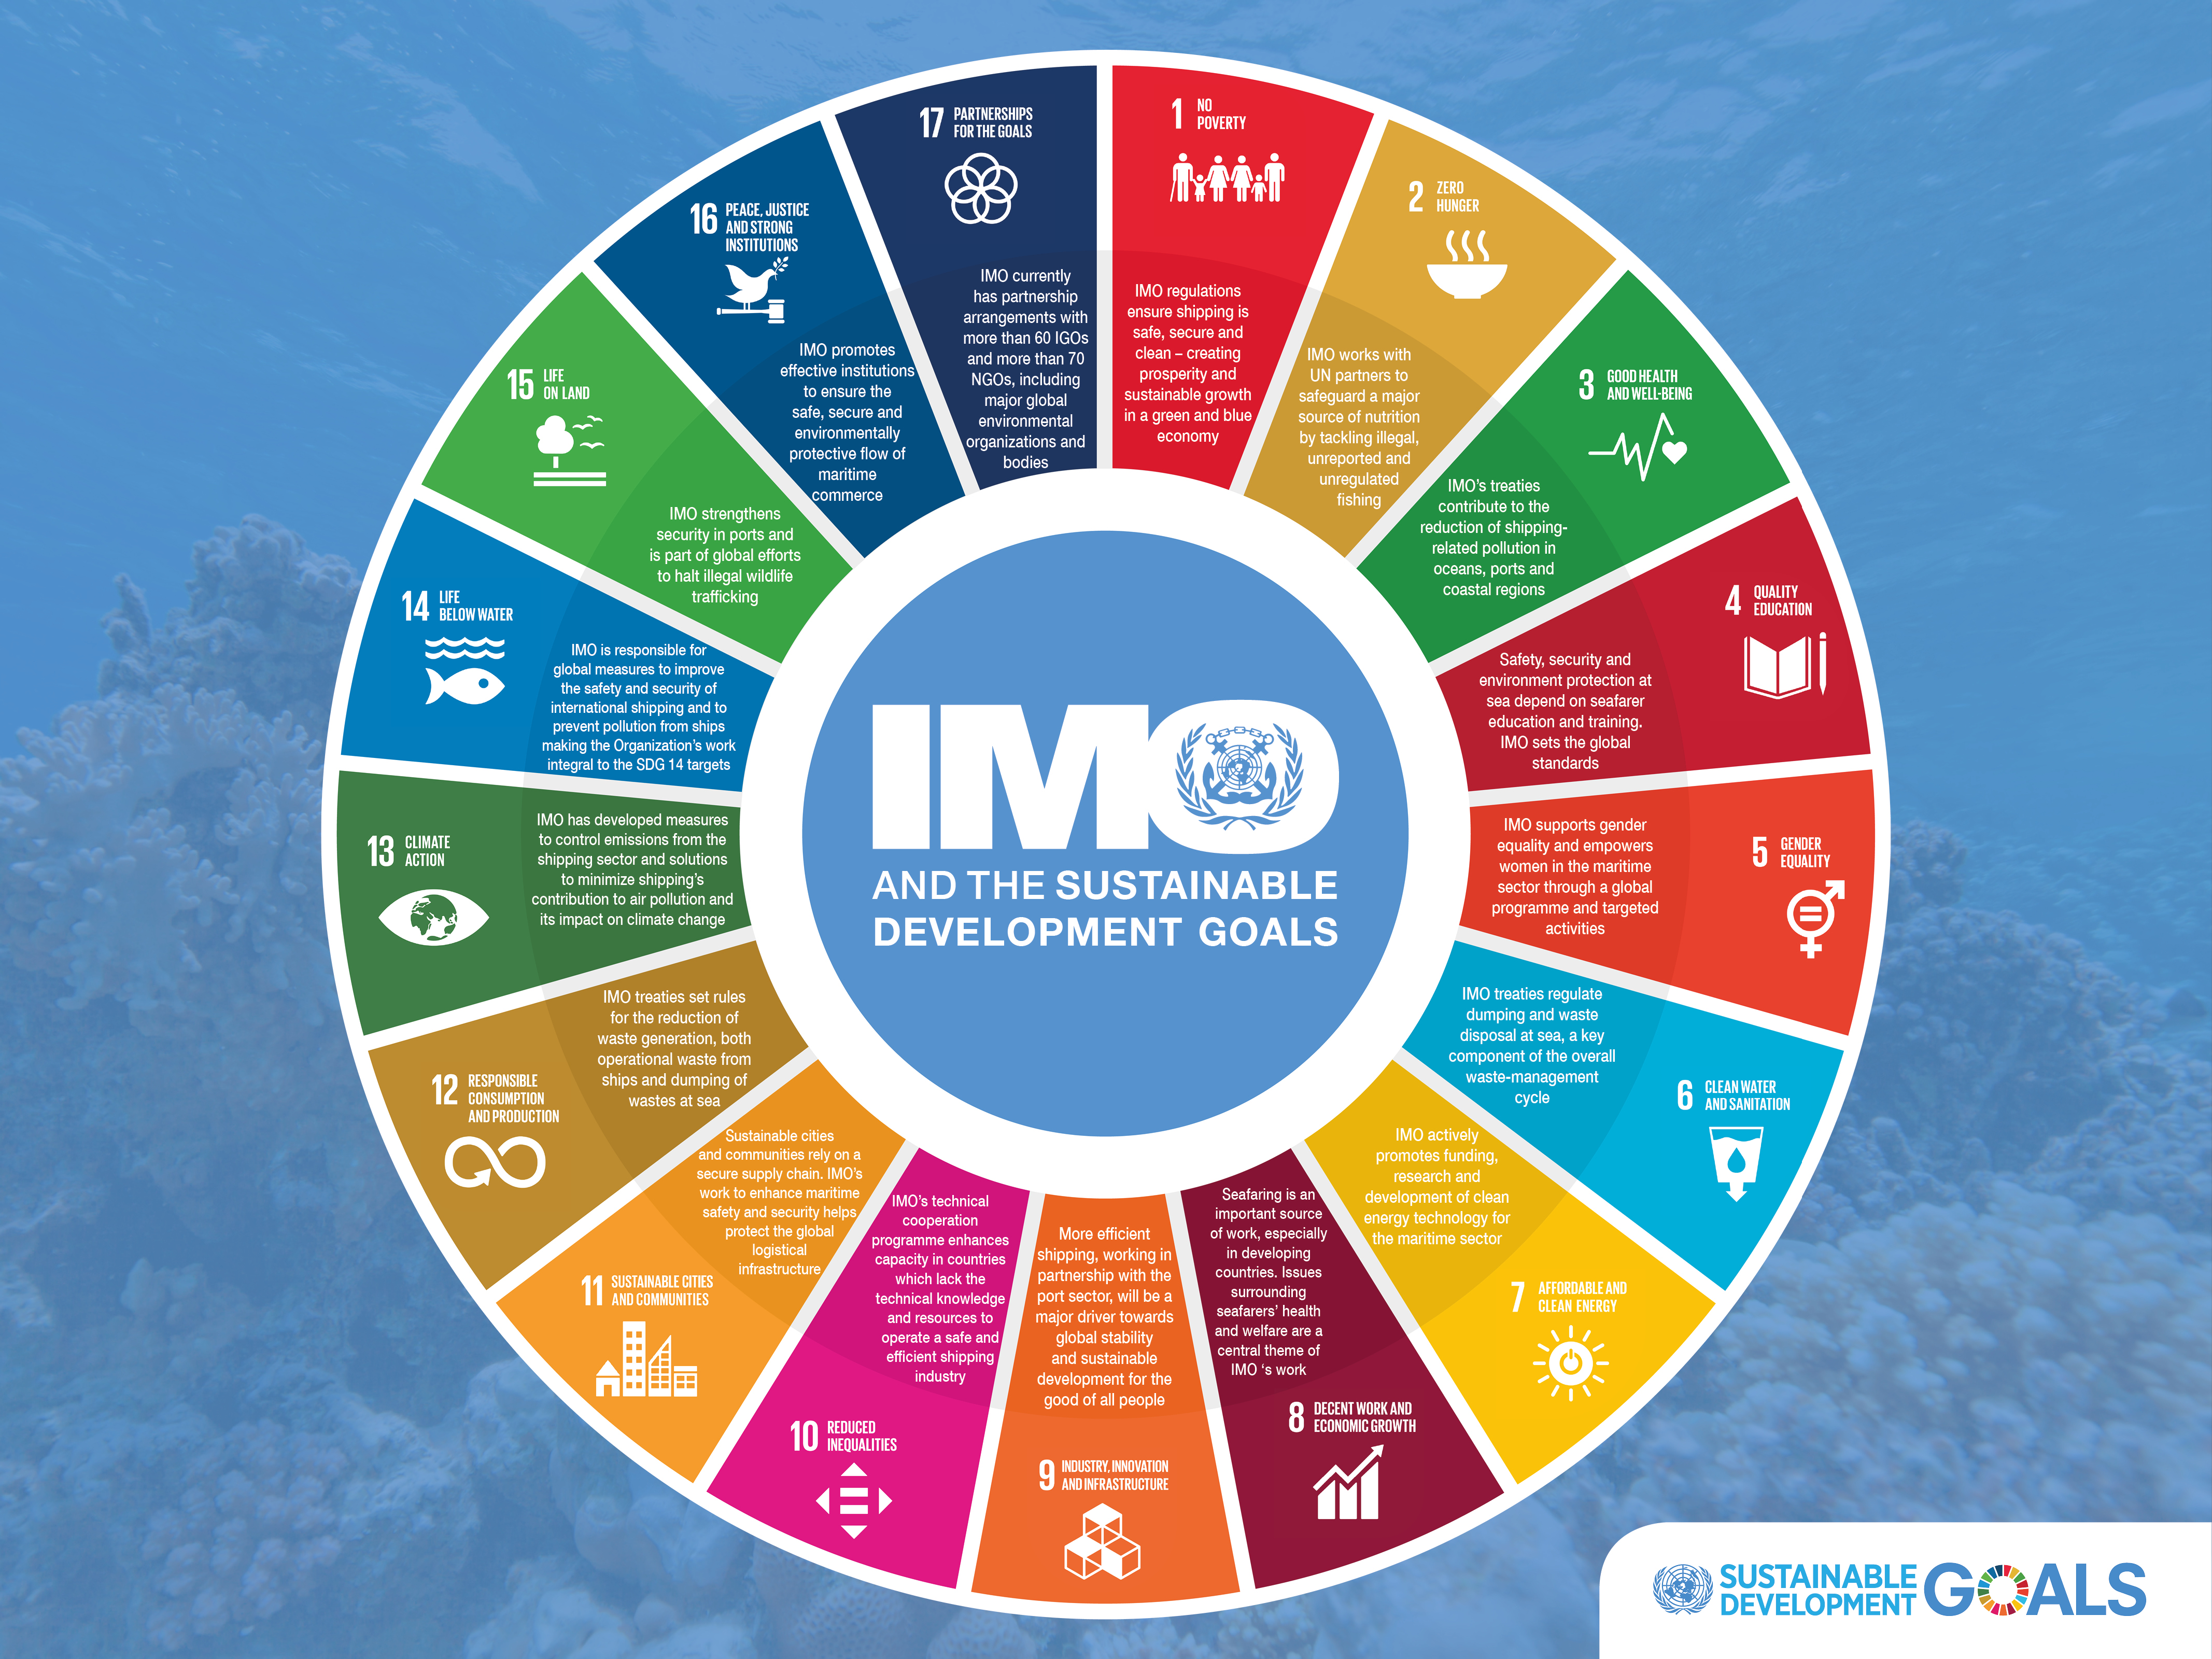 IMO and the Sustainabe Development Goals_wheel graphic_FINAL_small thumbnail.jpg